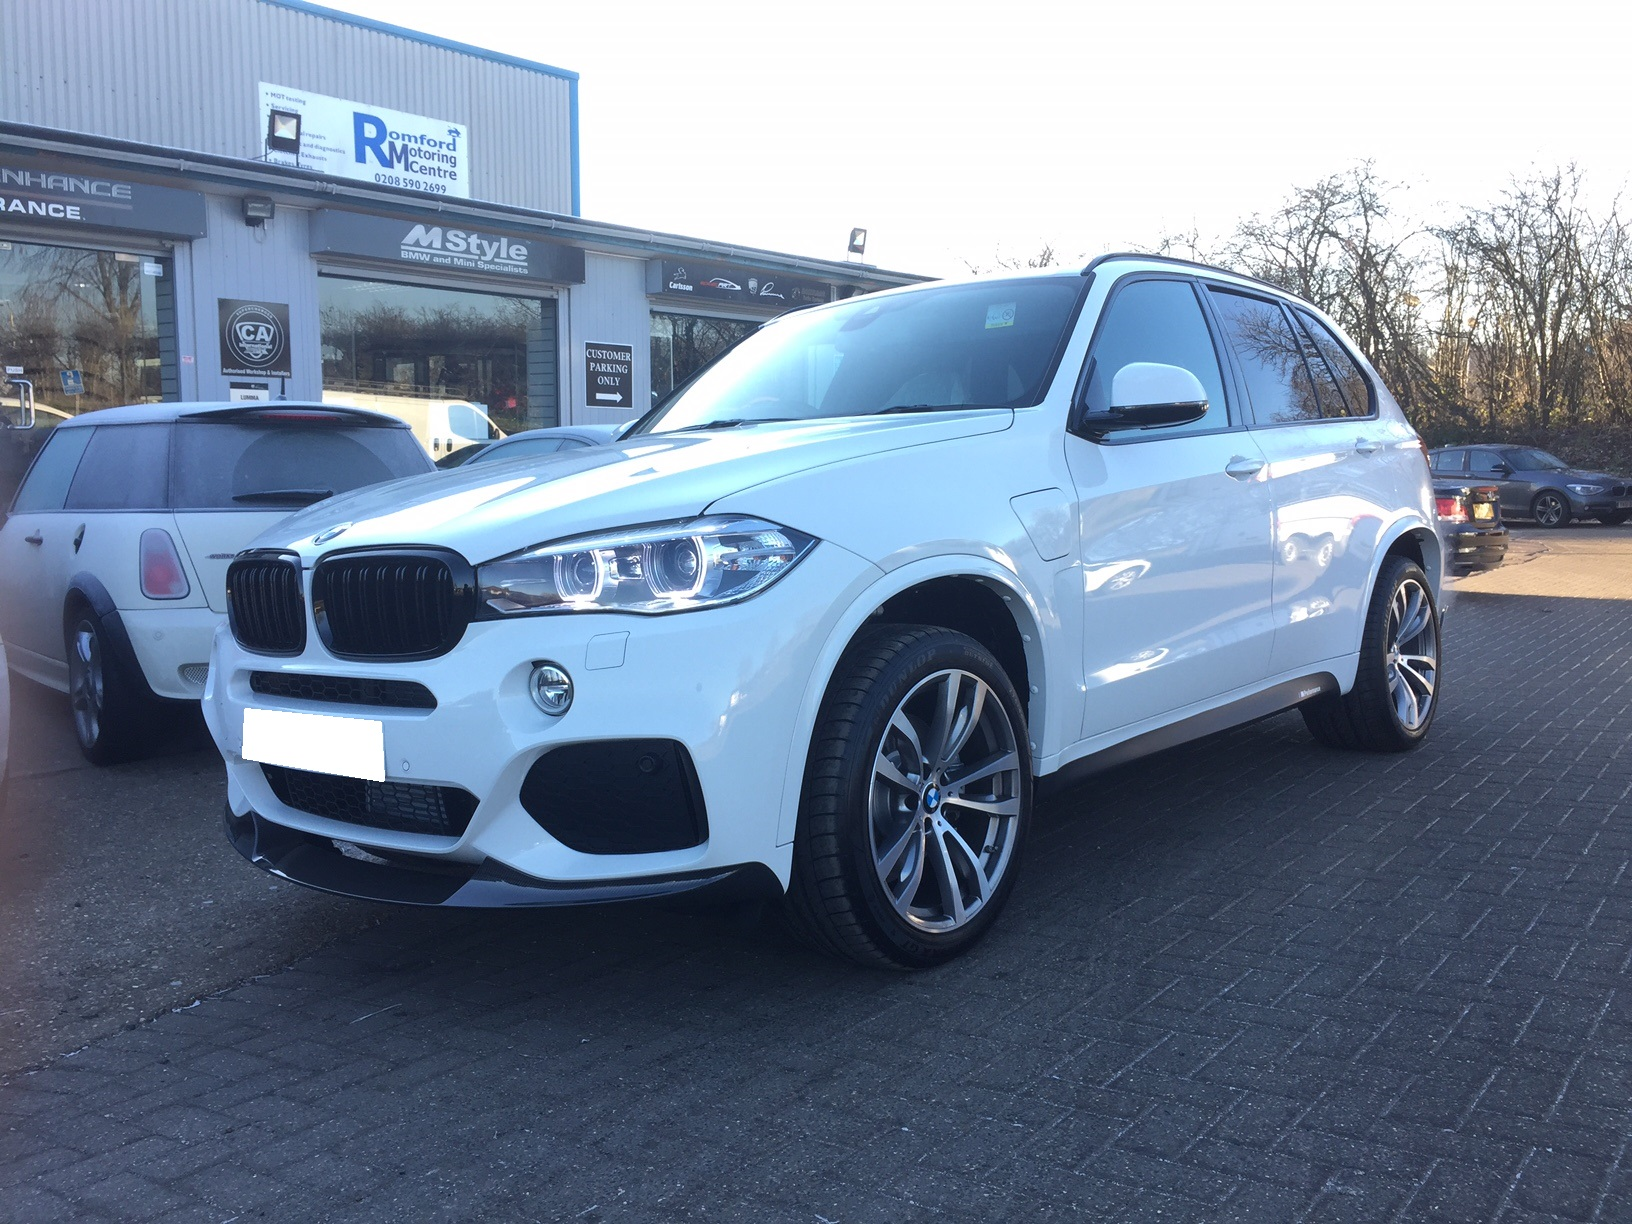 X5 Hybrid - exterior Styling